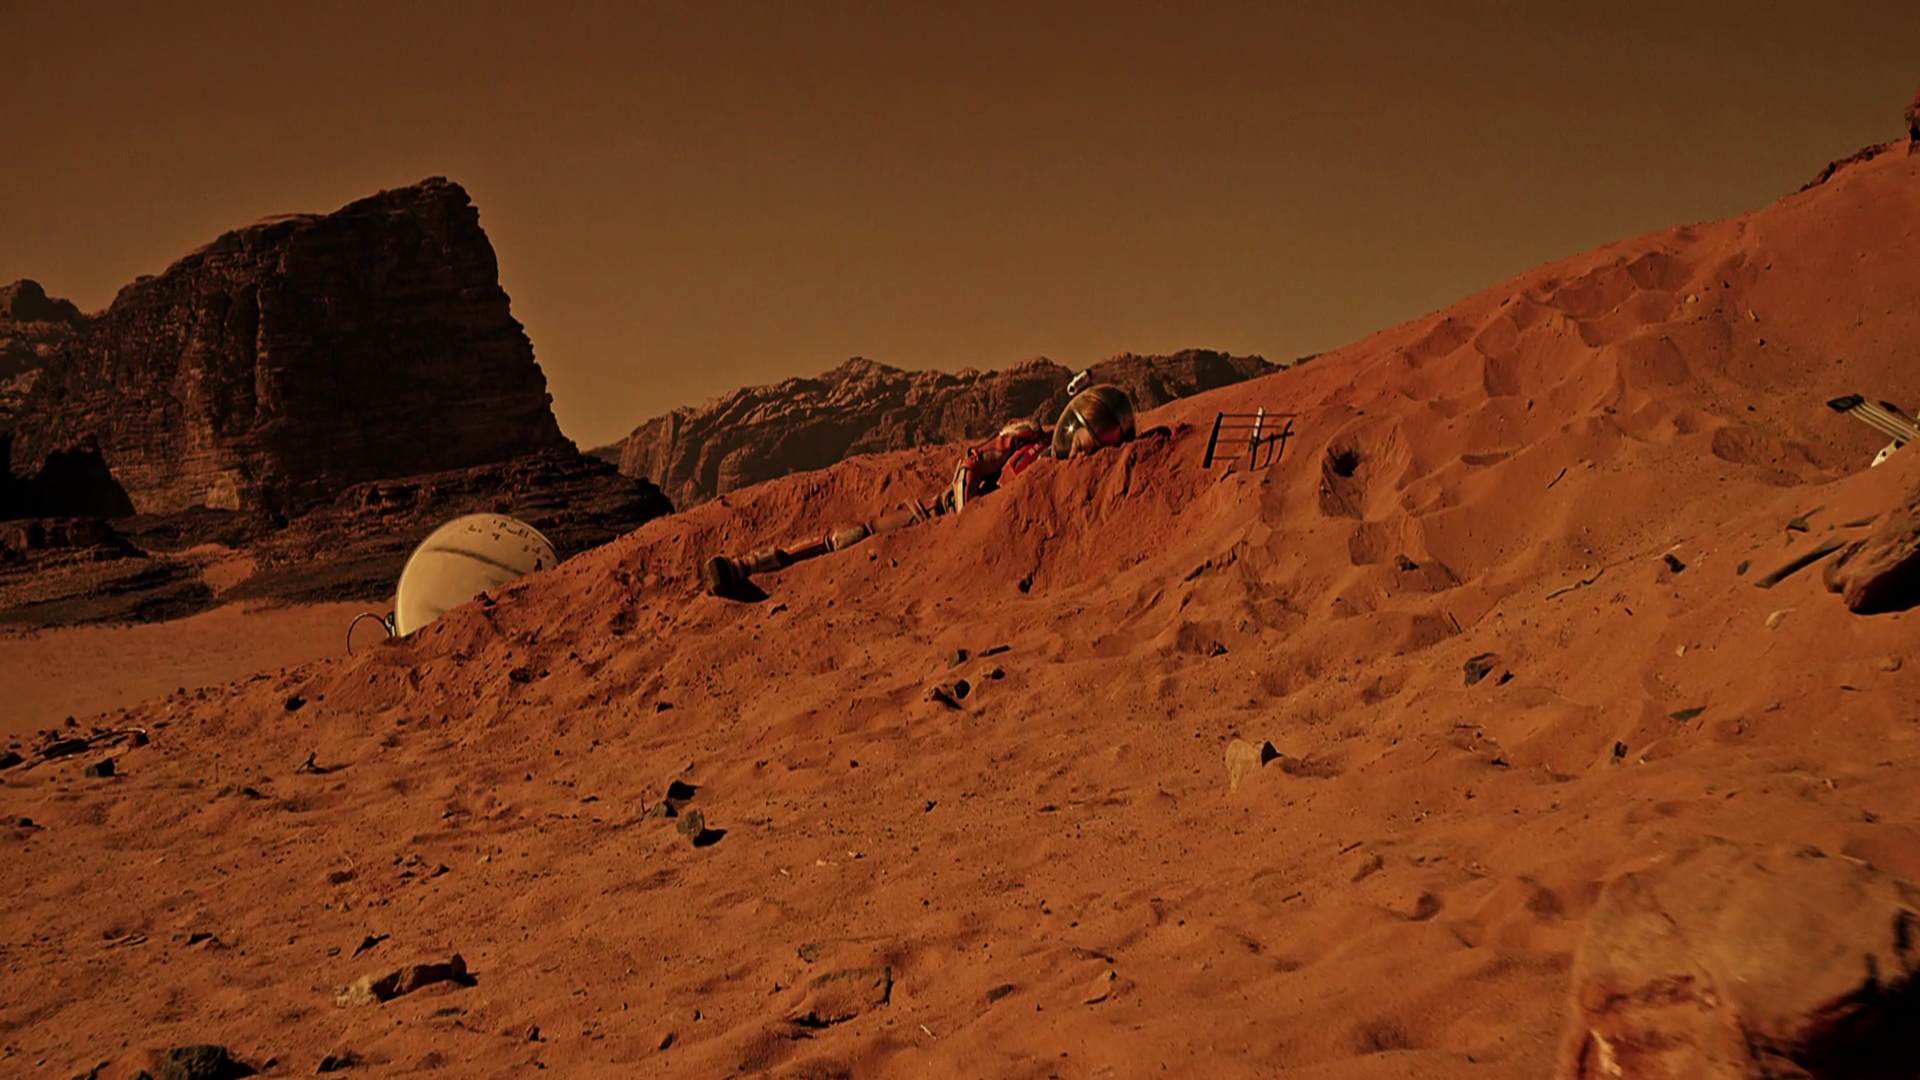 Seul sur mars full hd fond d 39 cran and arri re plan for Foto de fond ecran